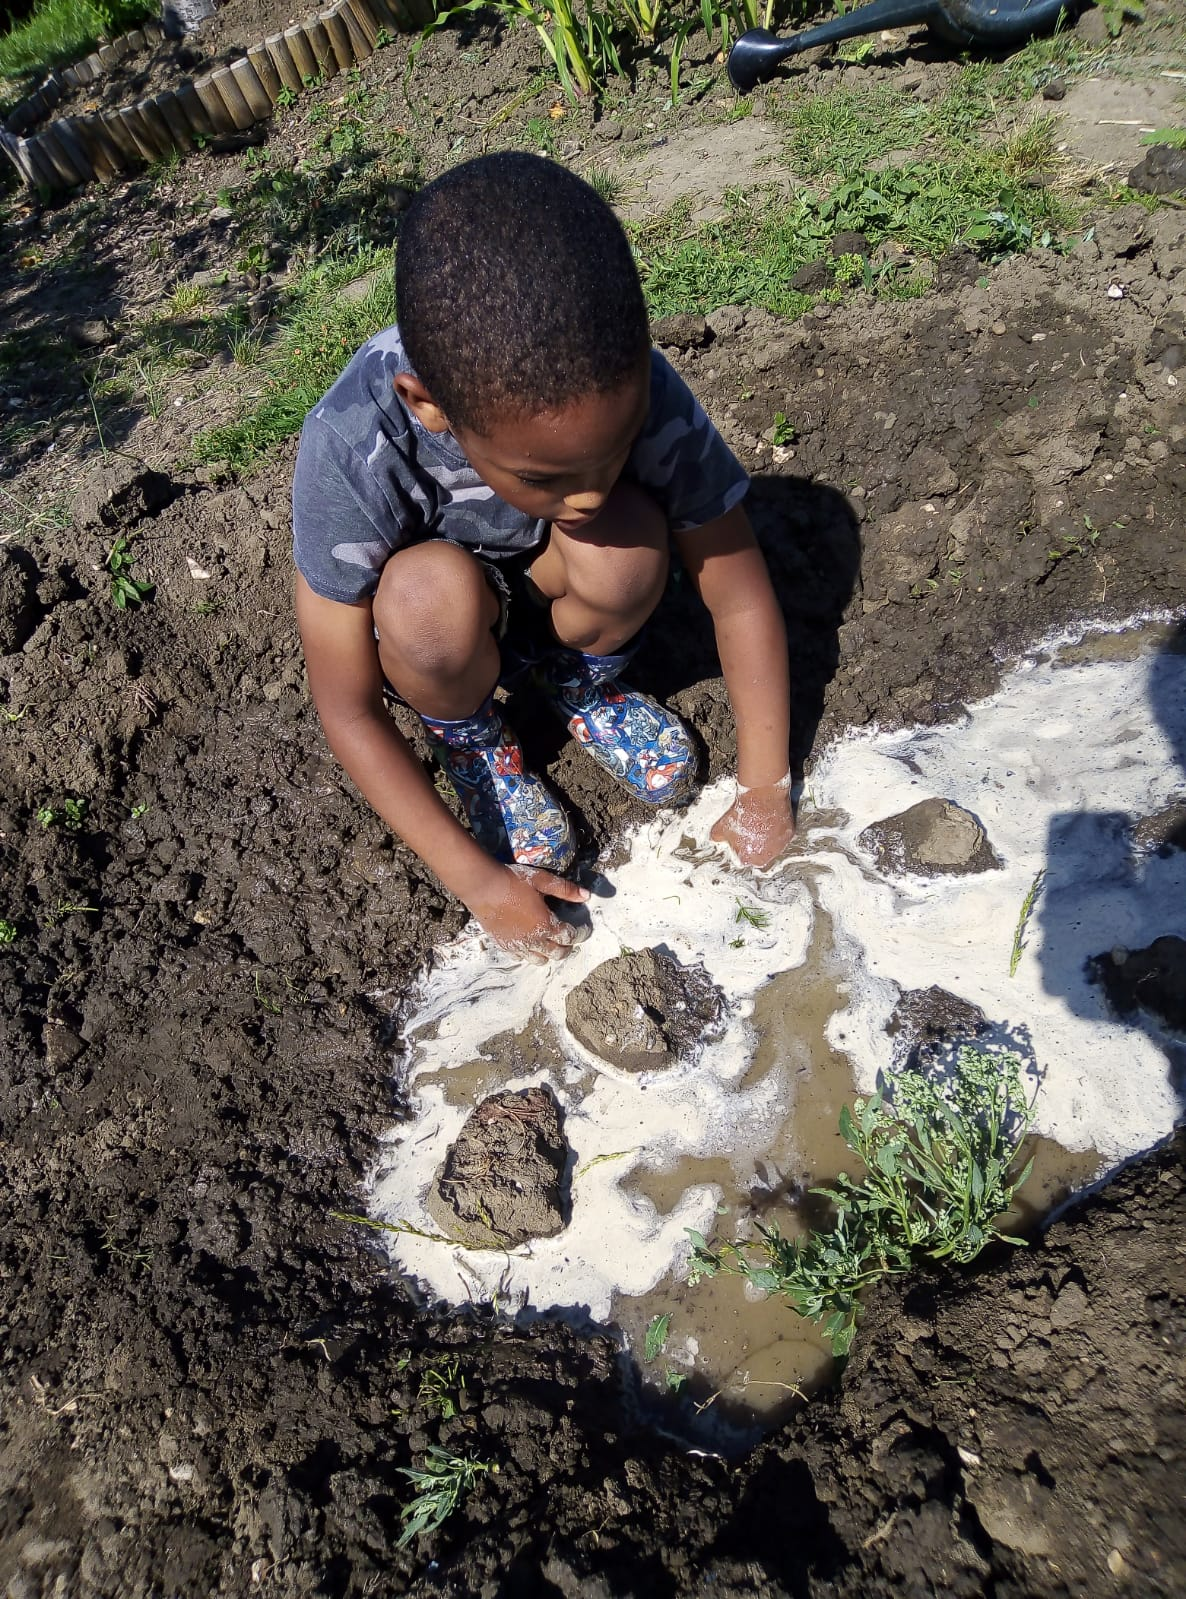 Using his imagination to make a pond